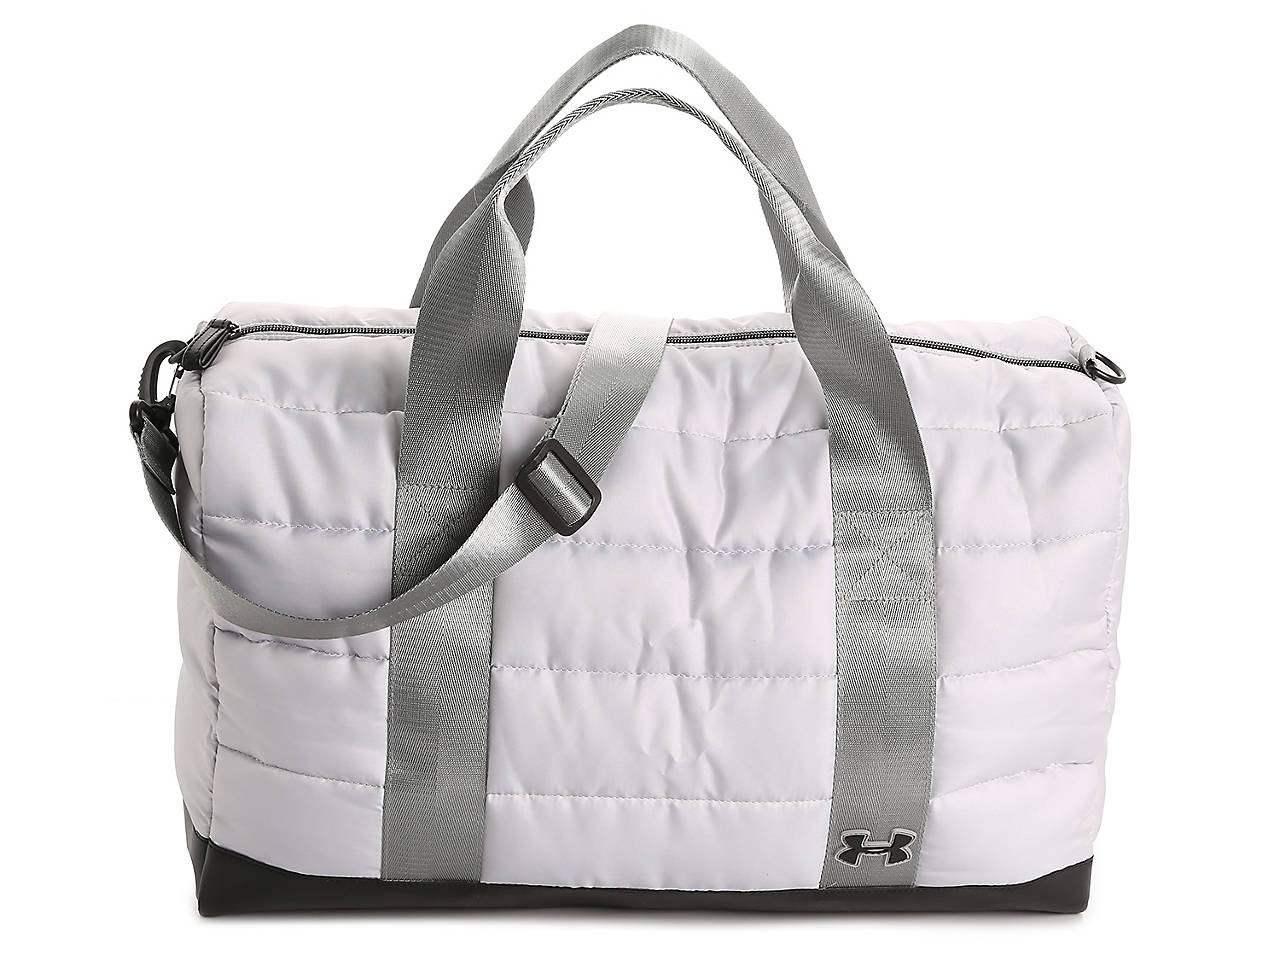 b630274a7029 DSW Exclusive. Free Under Armour Duffel